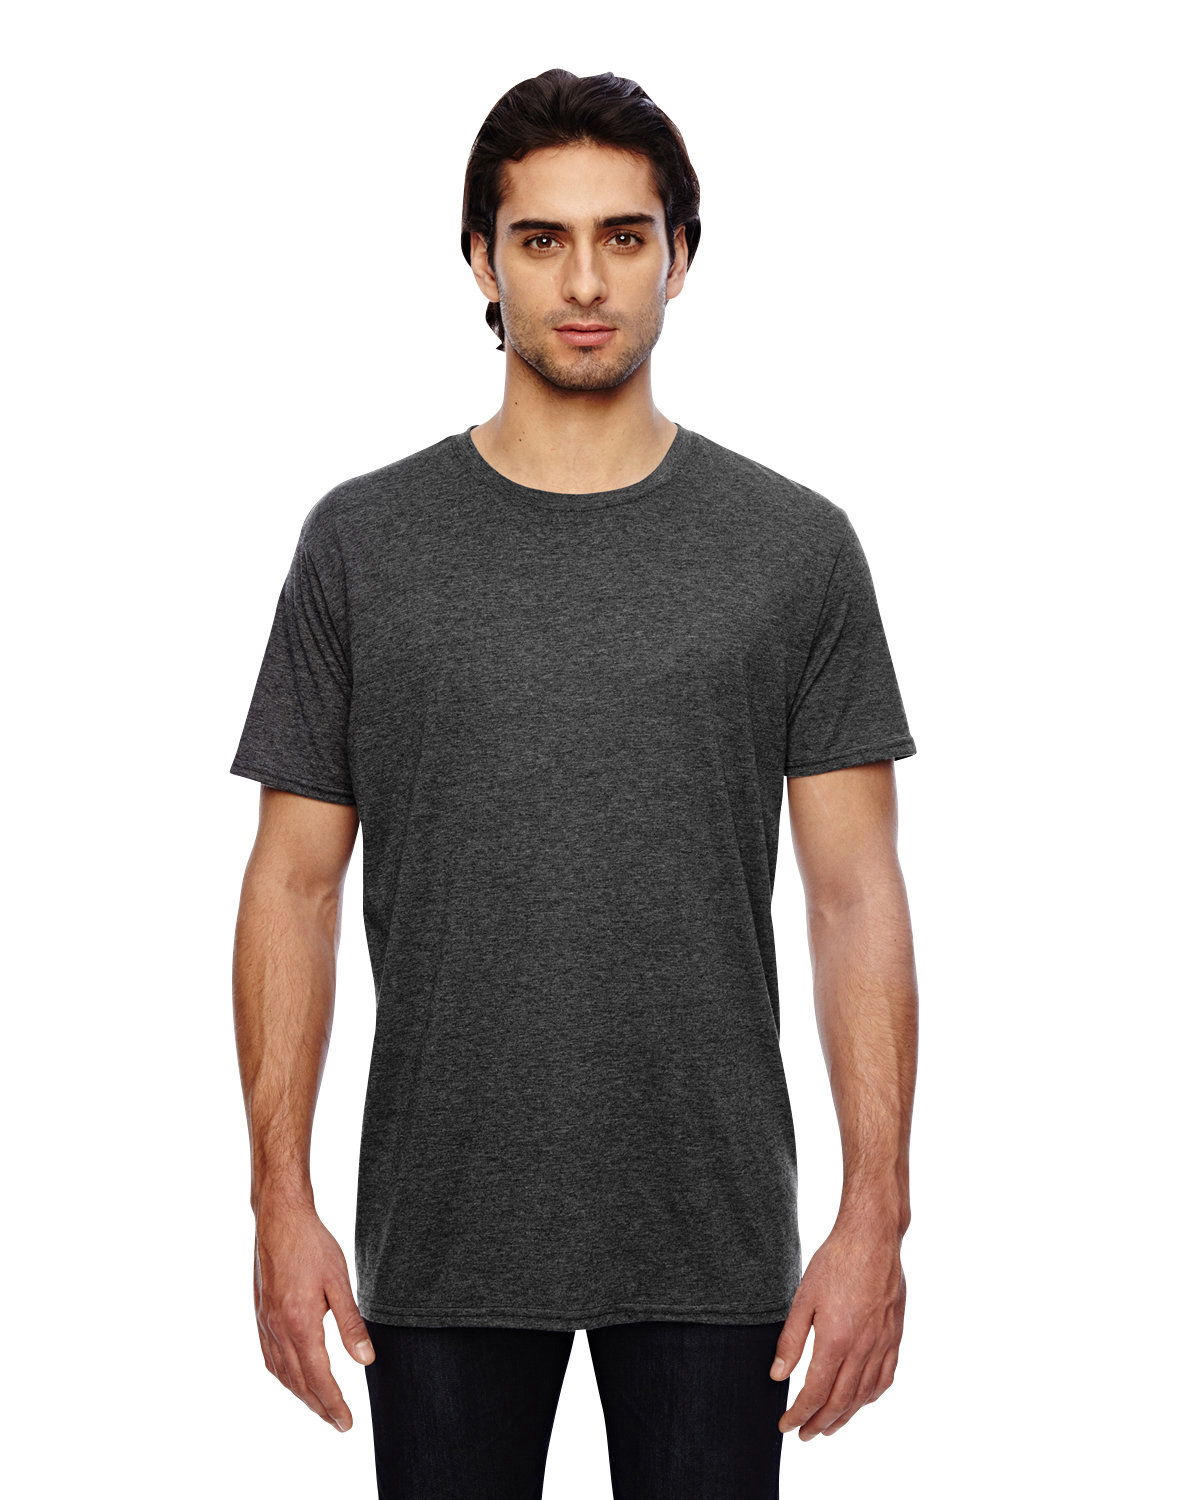 Anvil Adult Featherweight T-Shirt HEATHER DK GRY